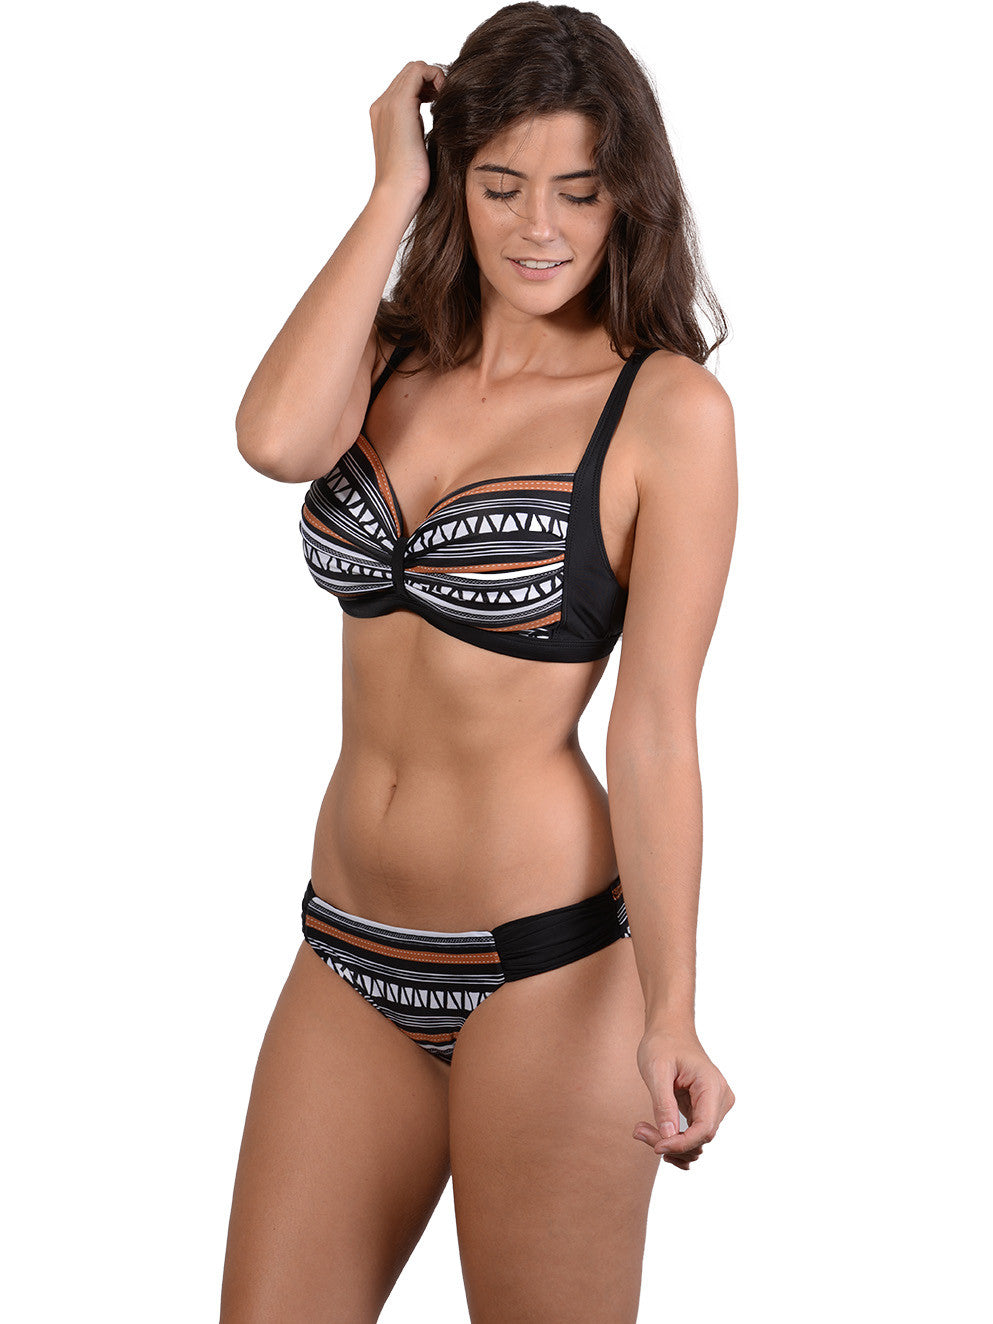 Side view of Zulu D-E Cup Bikini Top